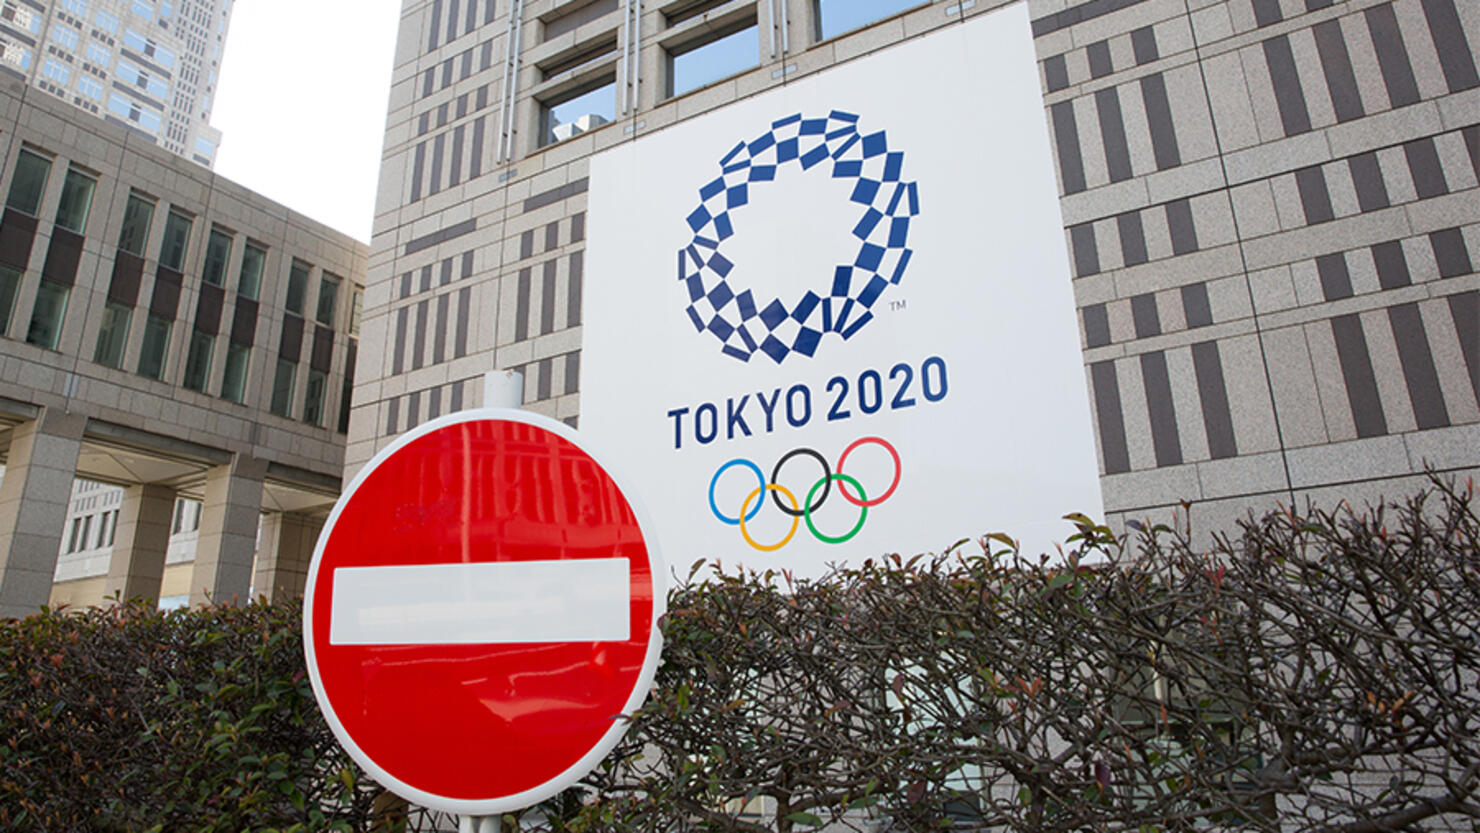 A stop sign in front of the Tokyo Metropolitan Government